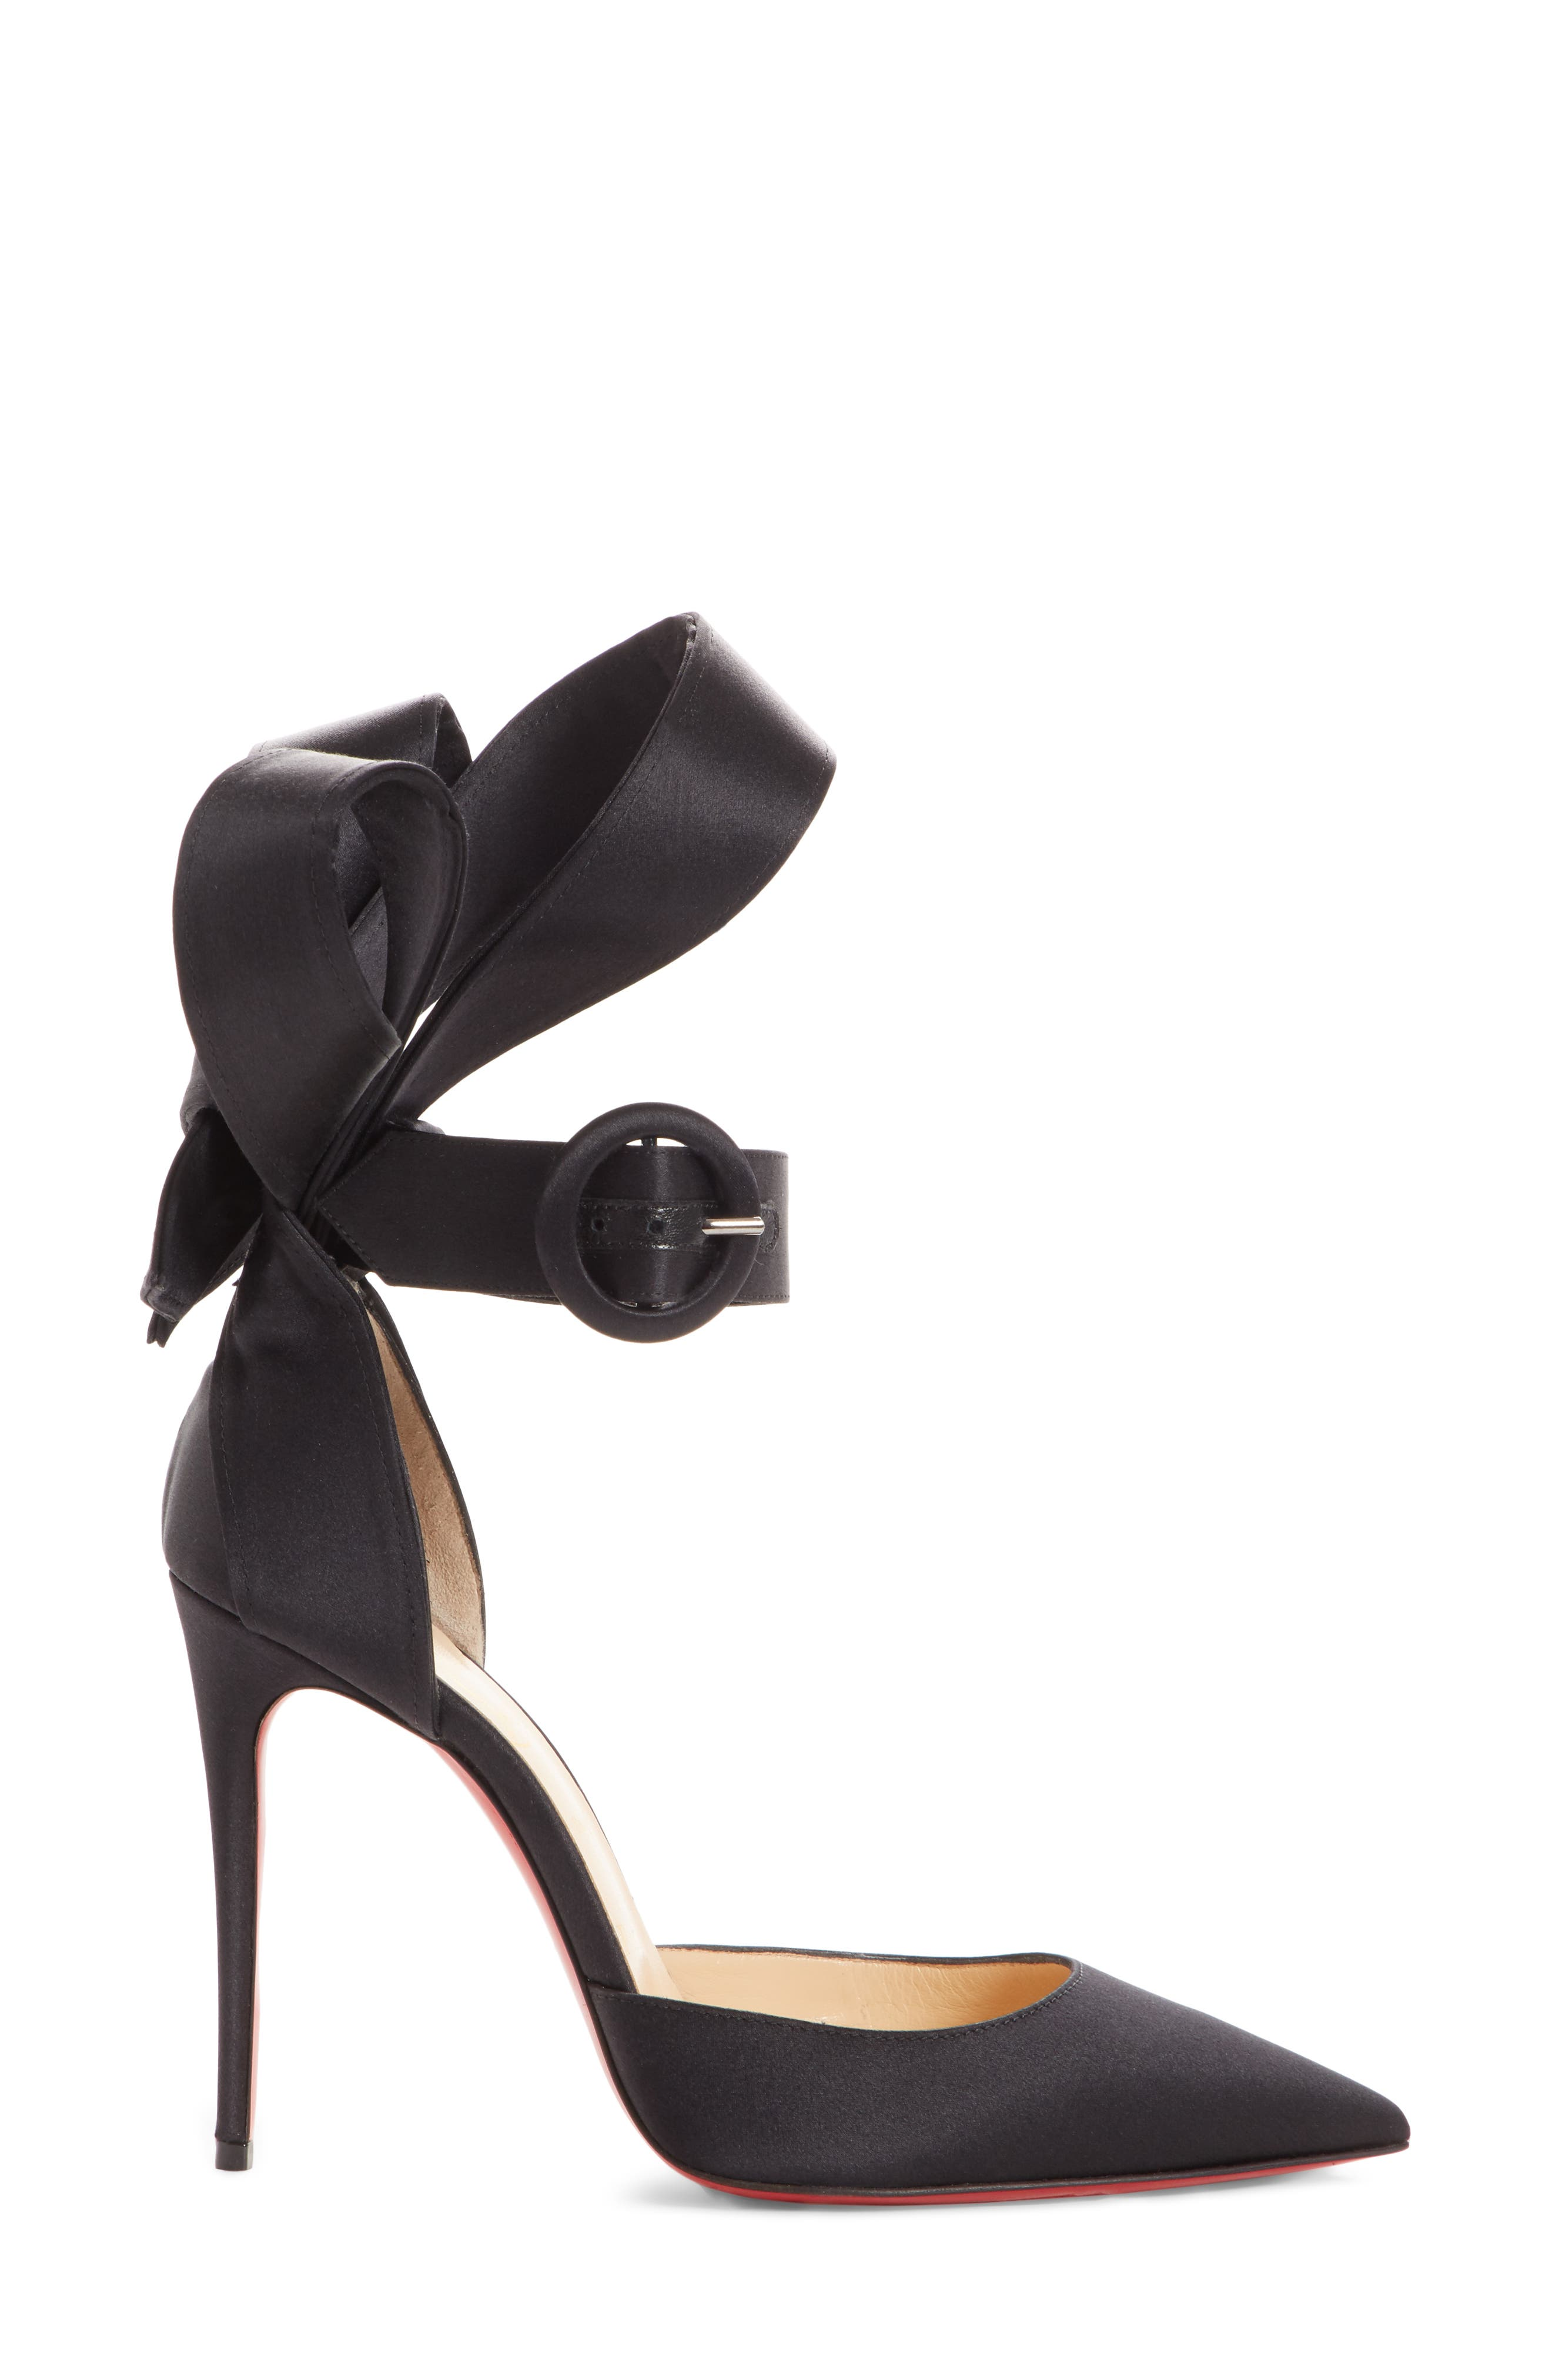 Raissa Bow Ankle Strap Pump,                             Alternate thumbnail 3, color,                             BLACK